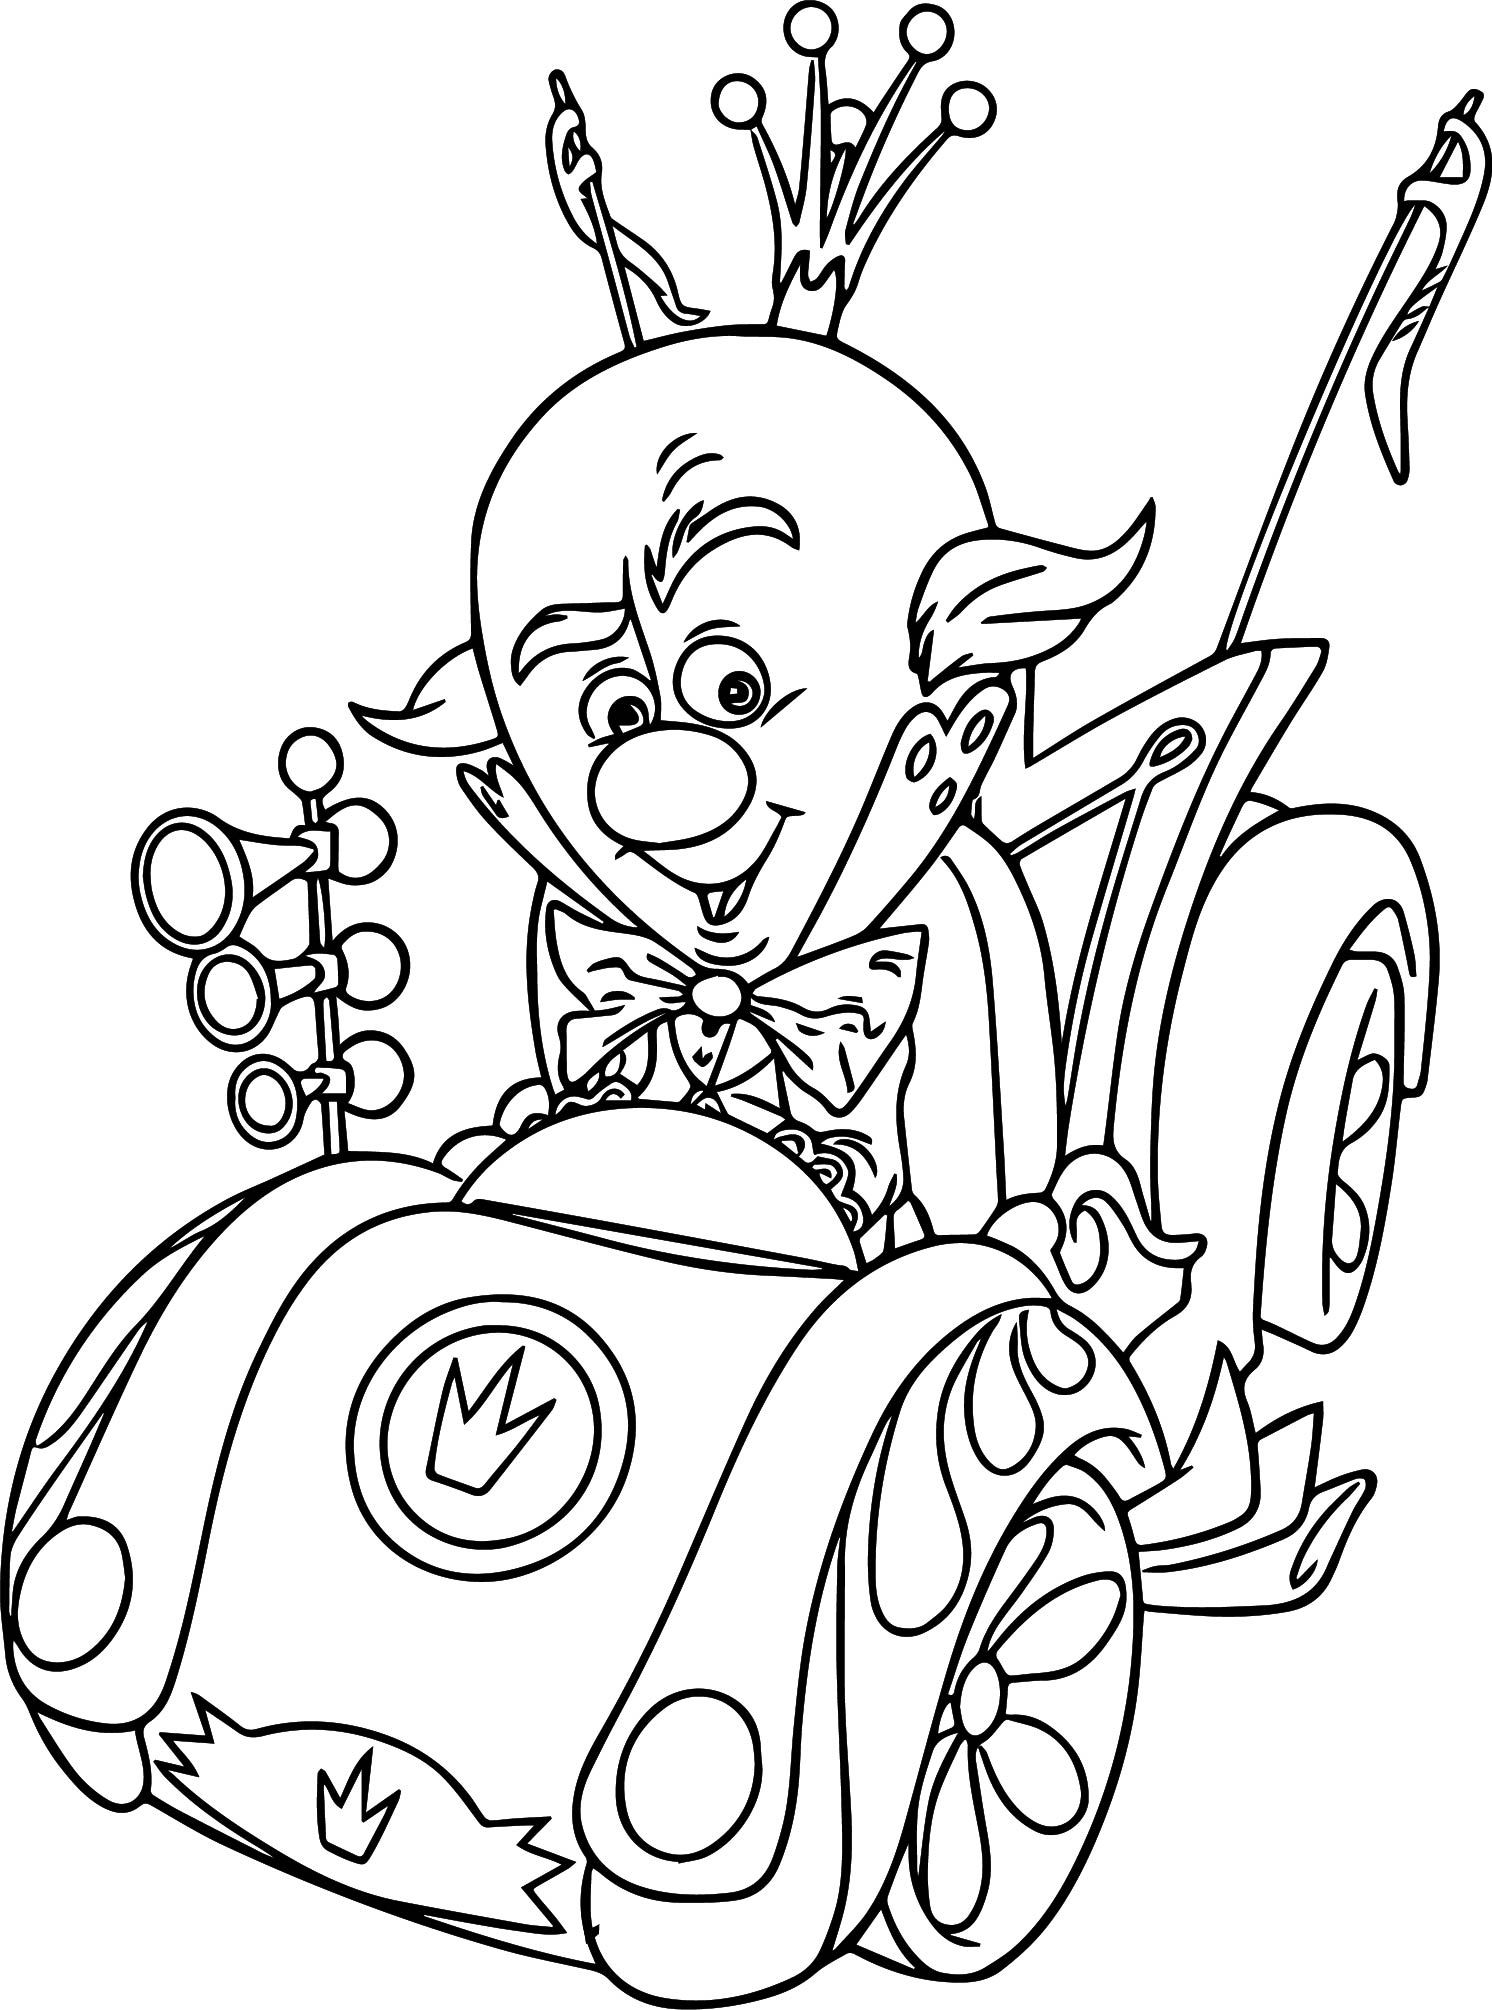 Disney Cars Coloring Pages The King - Dejanato